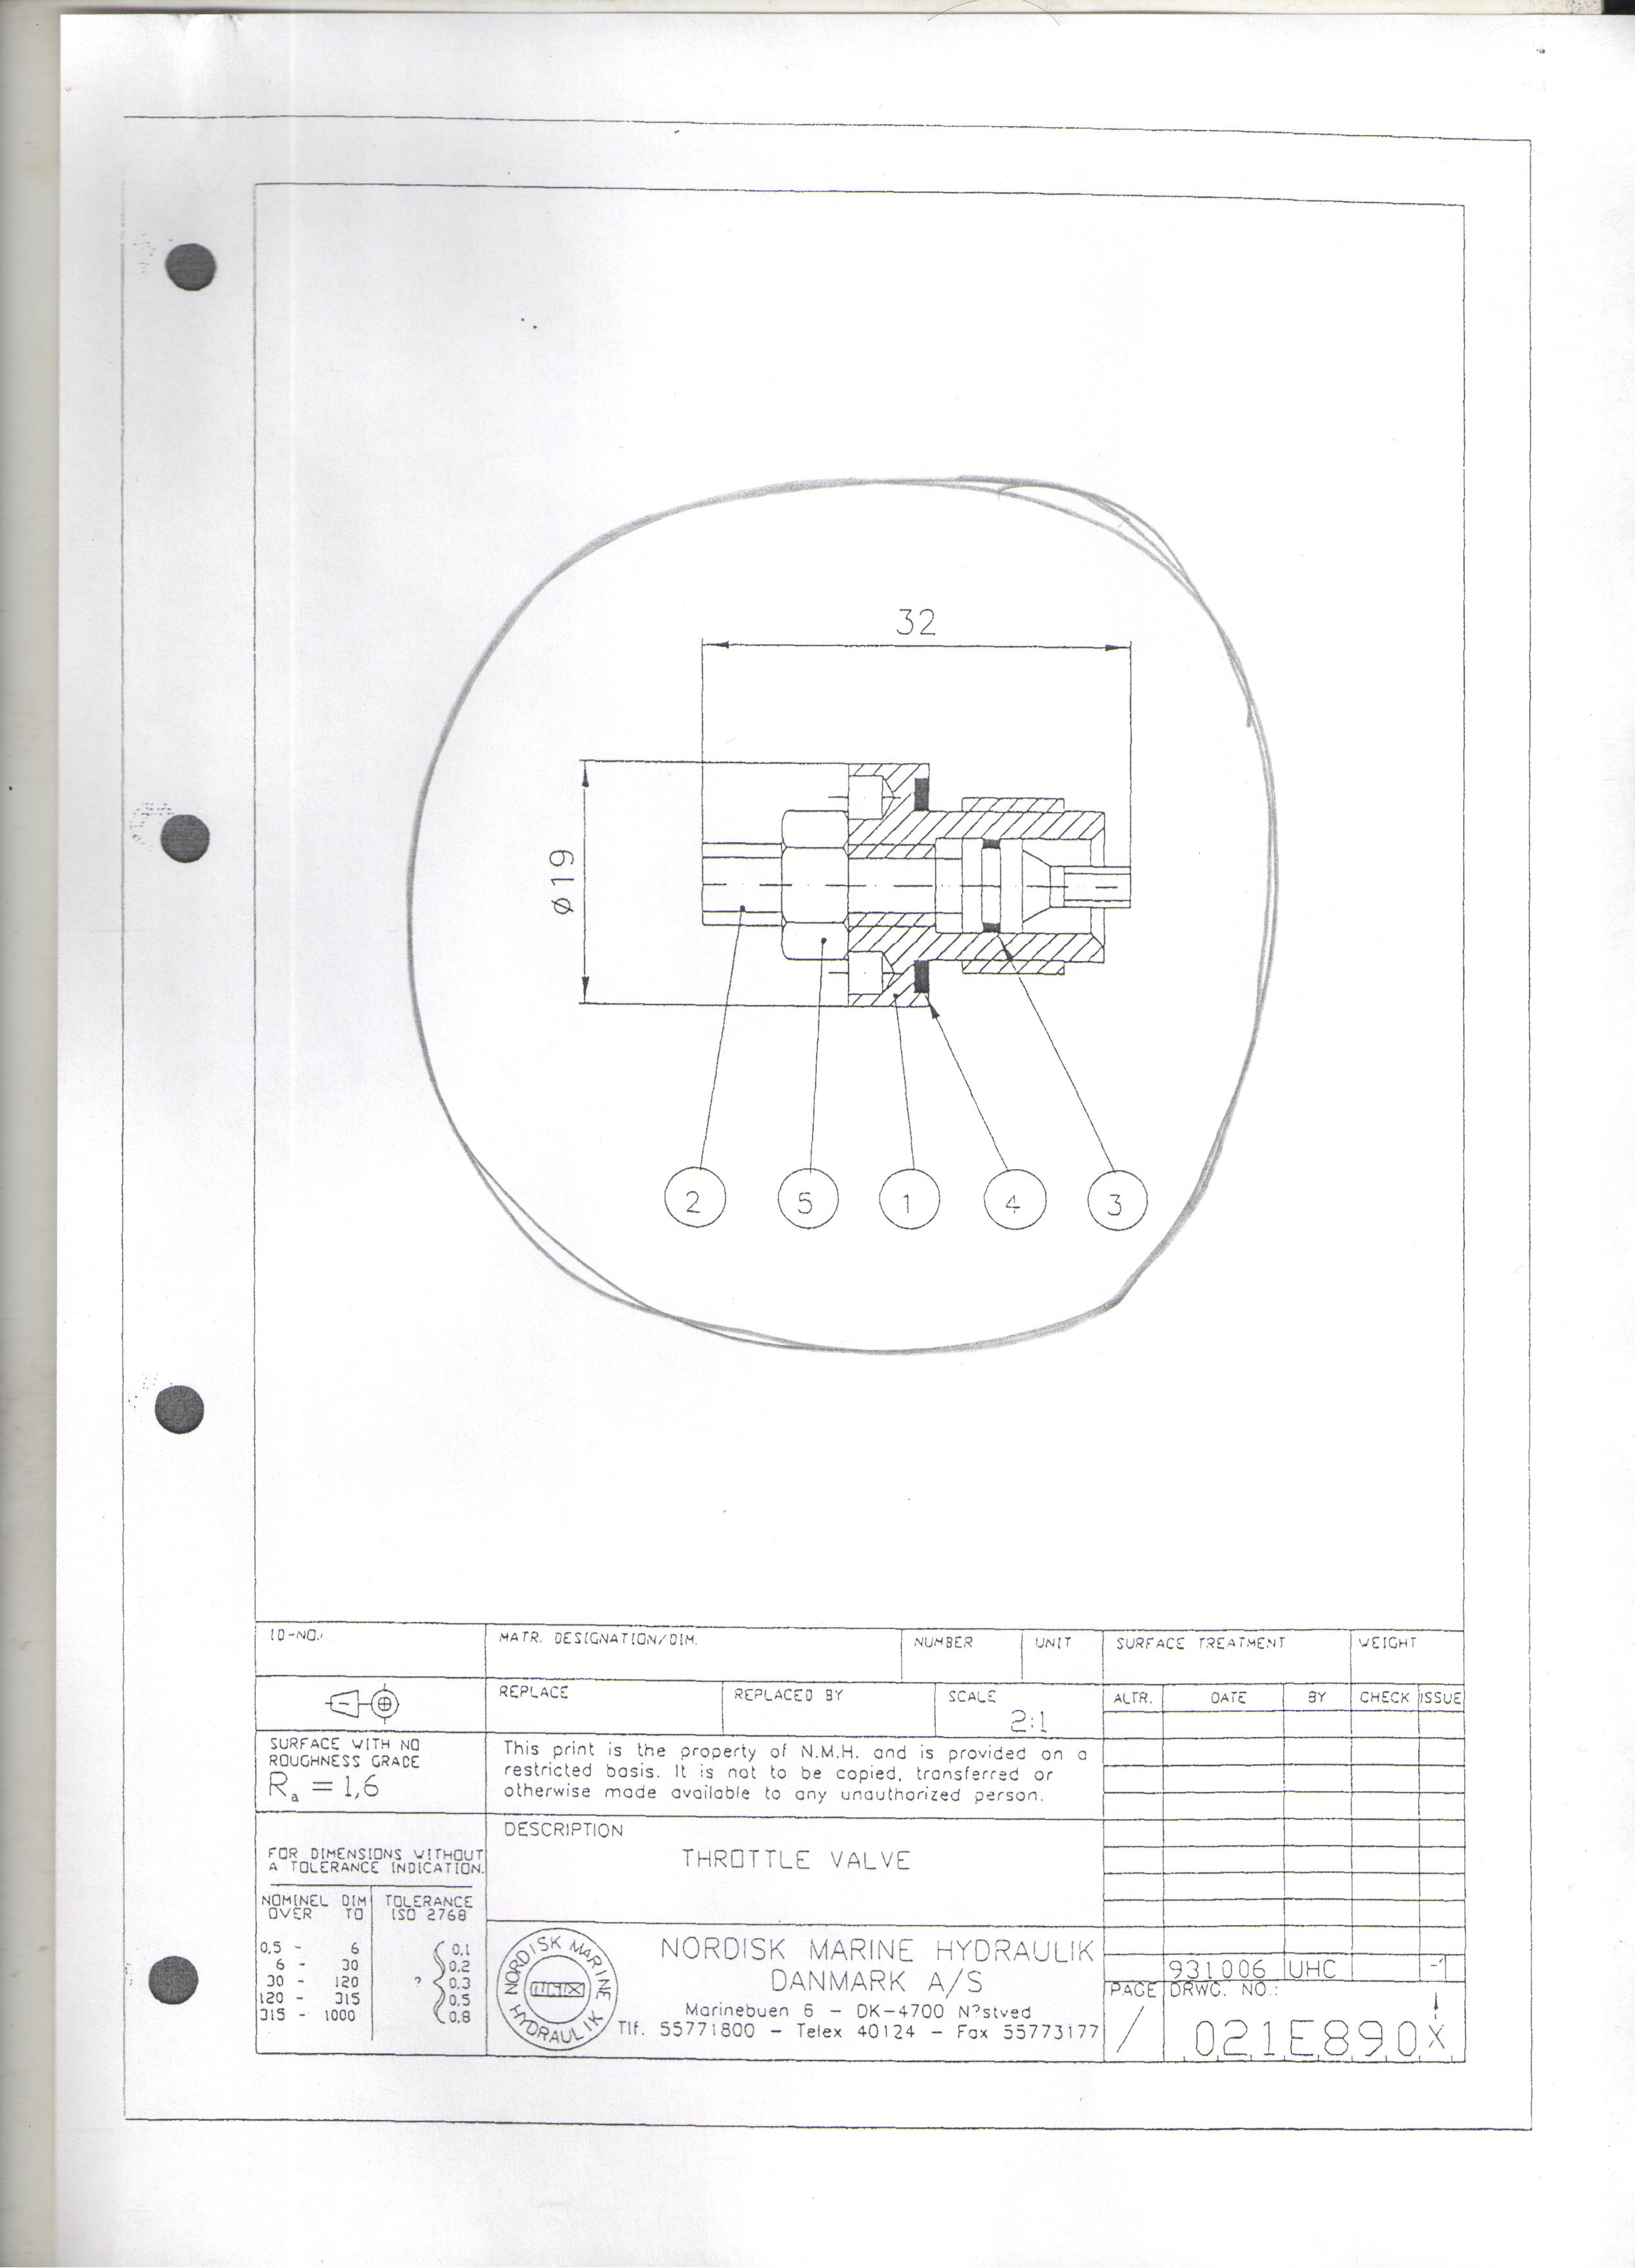 Throttle 021E8901 9021-8901 Drawing